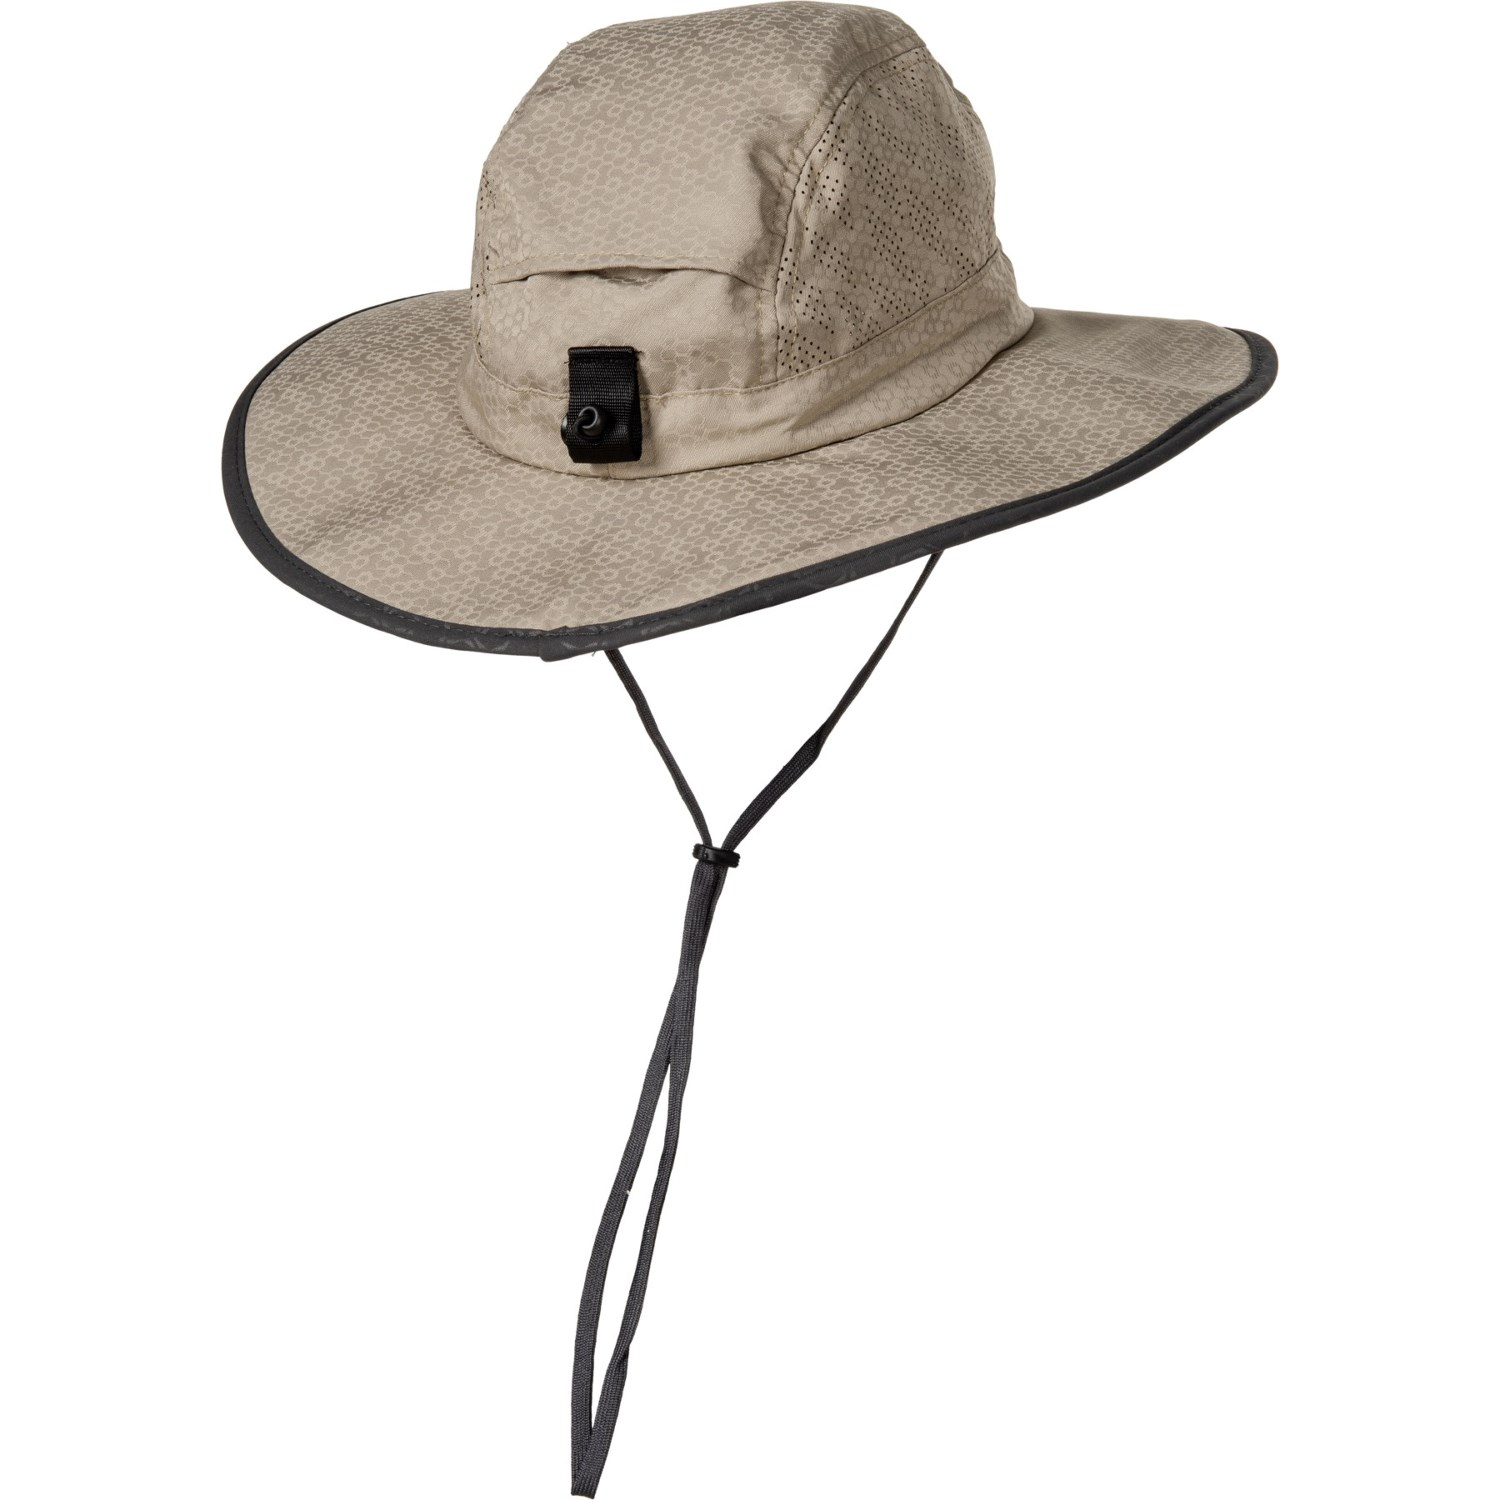 1500x1500 Ctr Summit Expedition Sun Hat